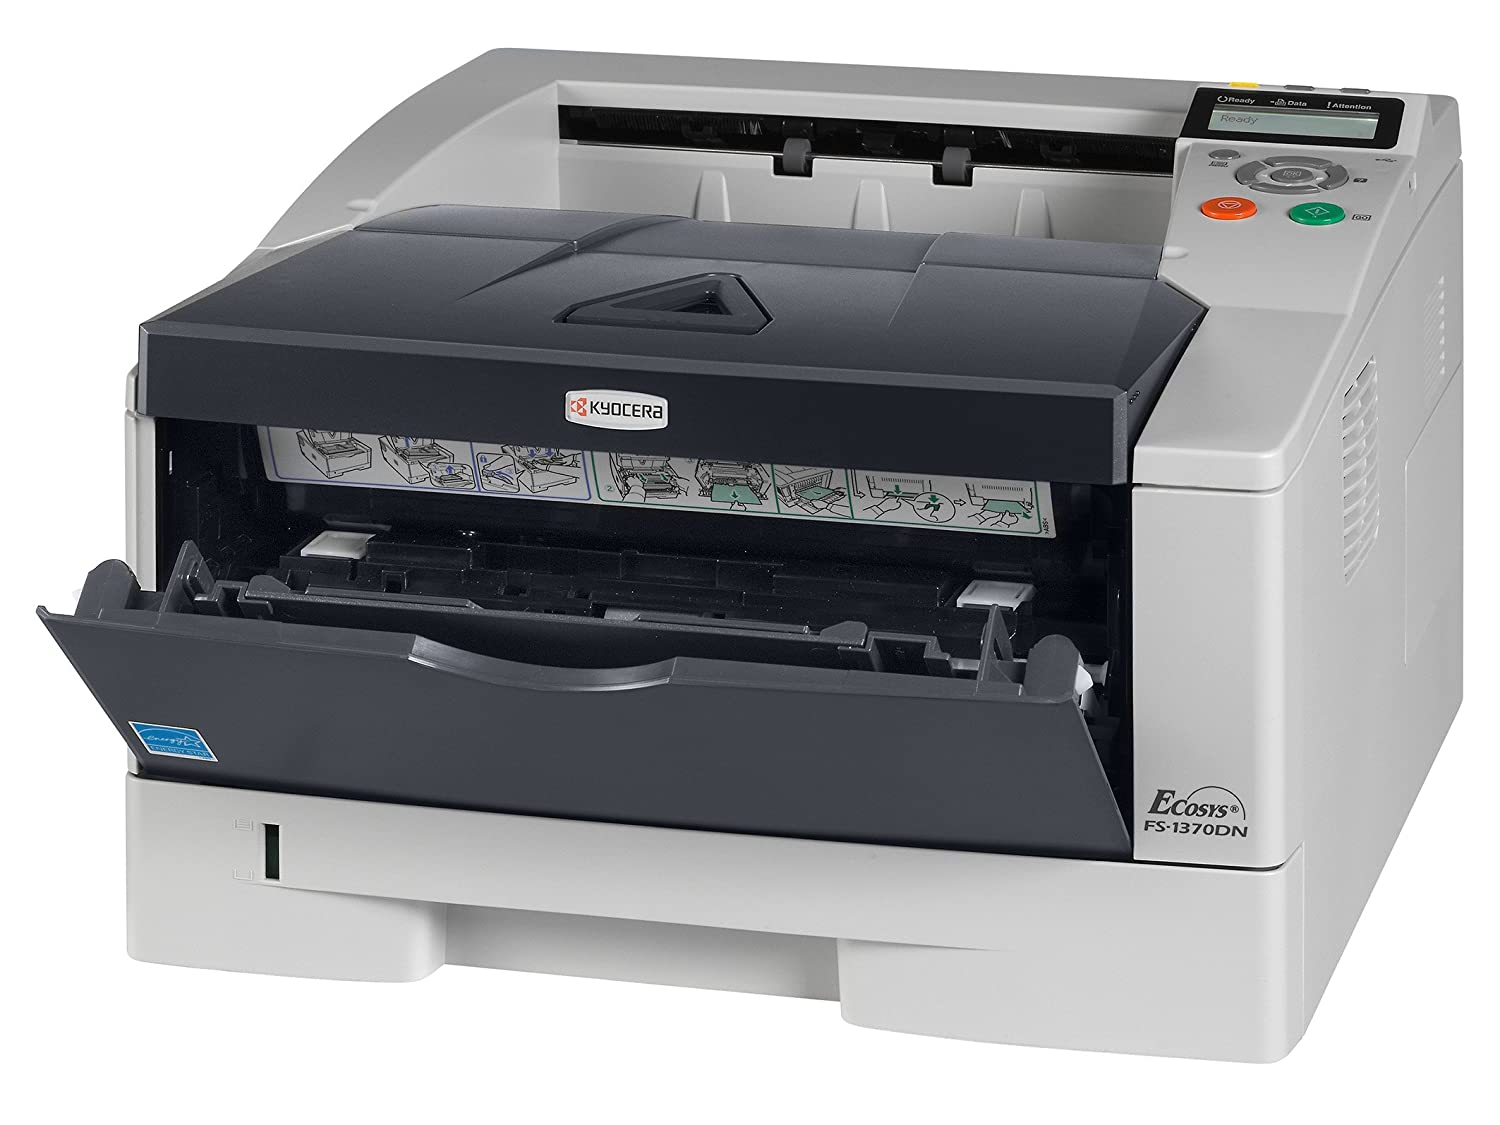 Kyocera ECOSYS FS-1370DN Printer KX New